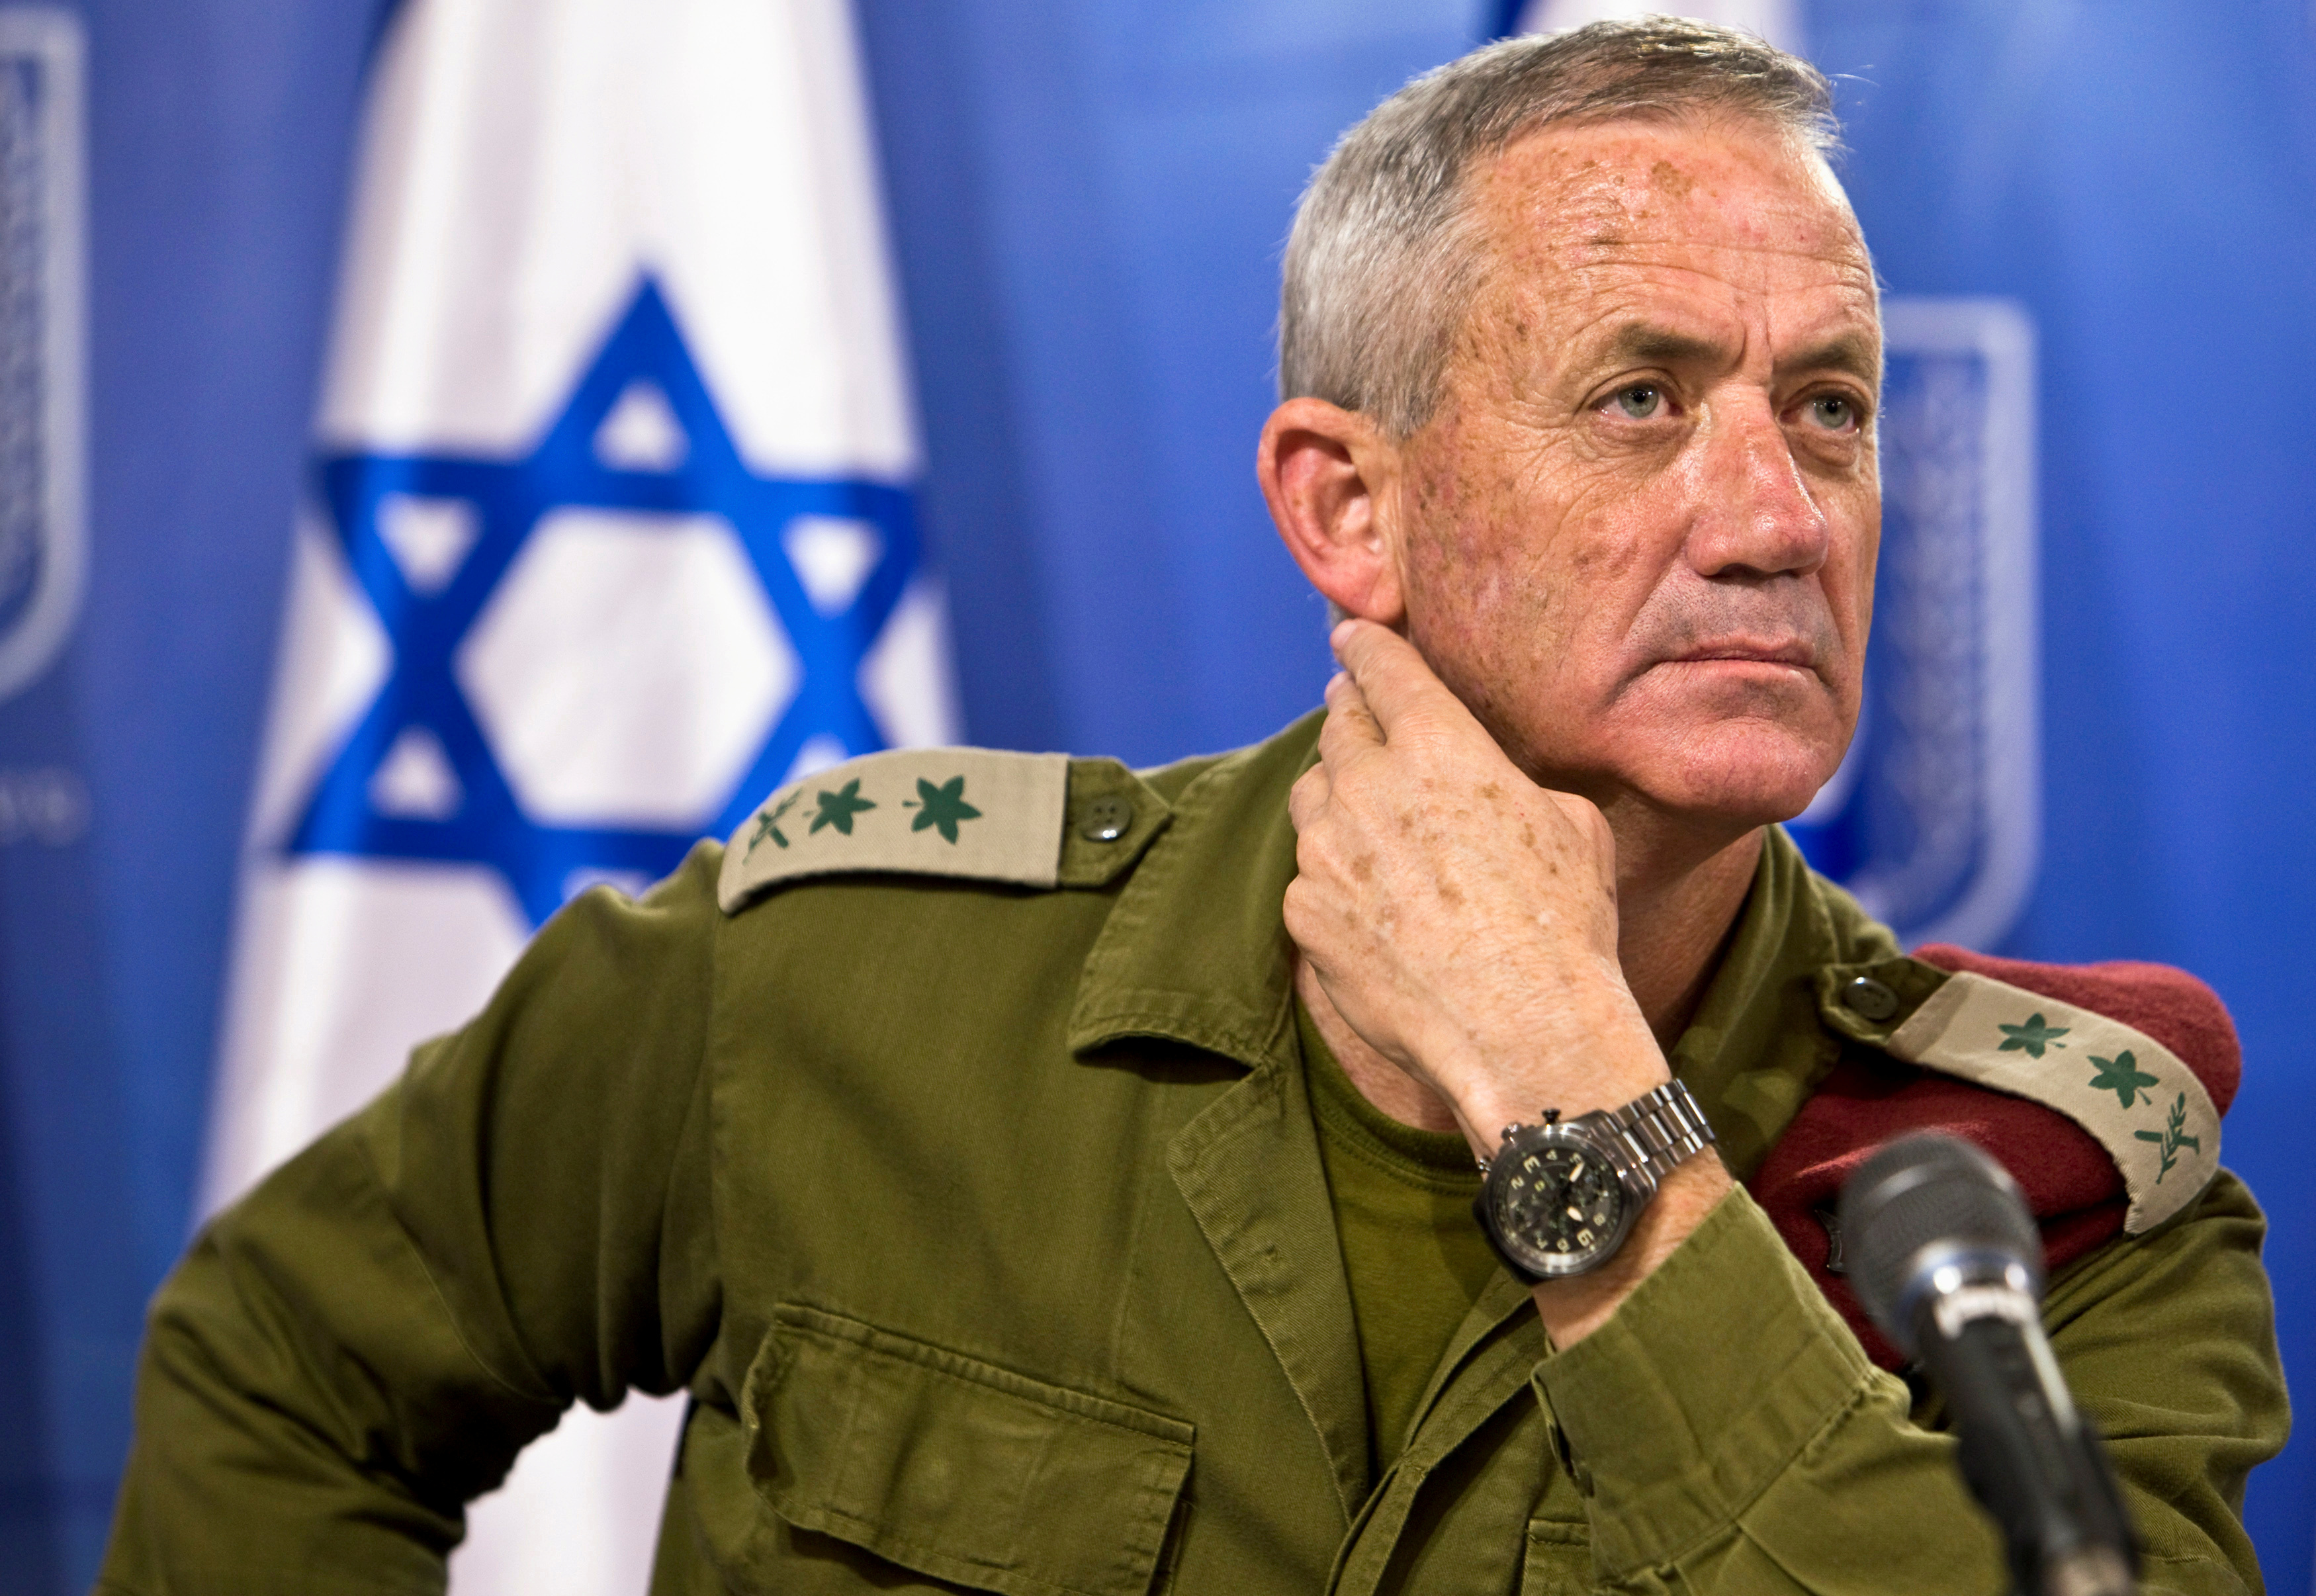 FILE PHOTO: Israeli military chief Lieutenant-General Benny Gantz attends a news conference in Tel Aviv, Israel July 28, 2014. REUTERS/Nir Elias/File Photo